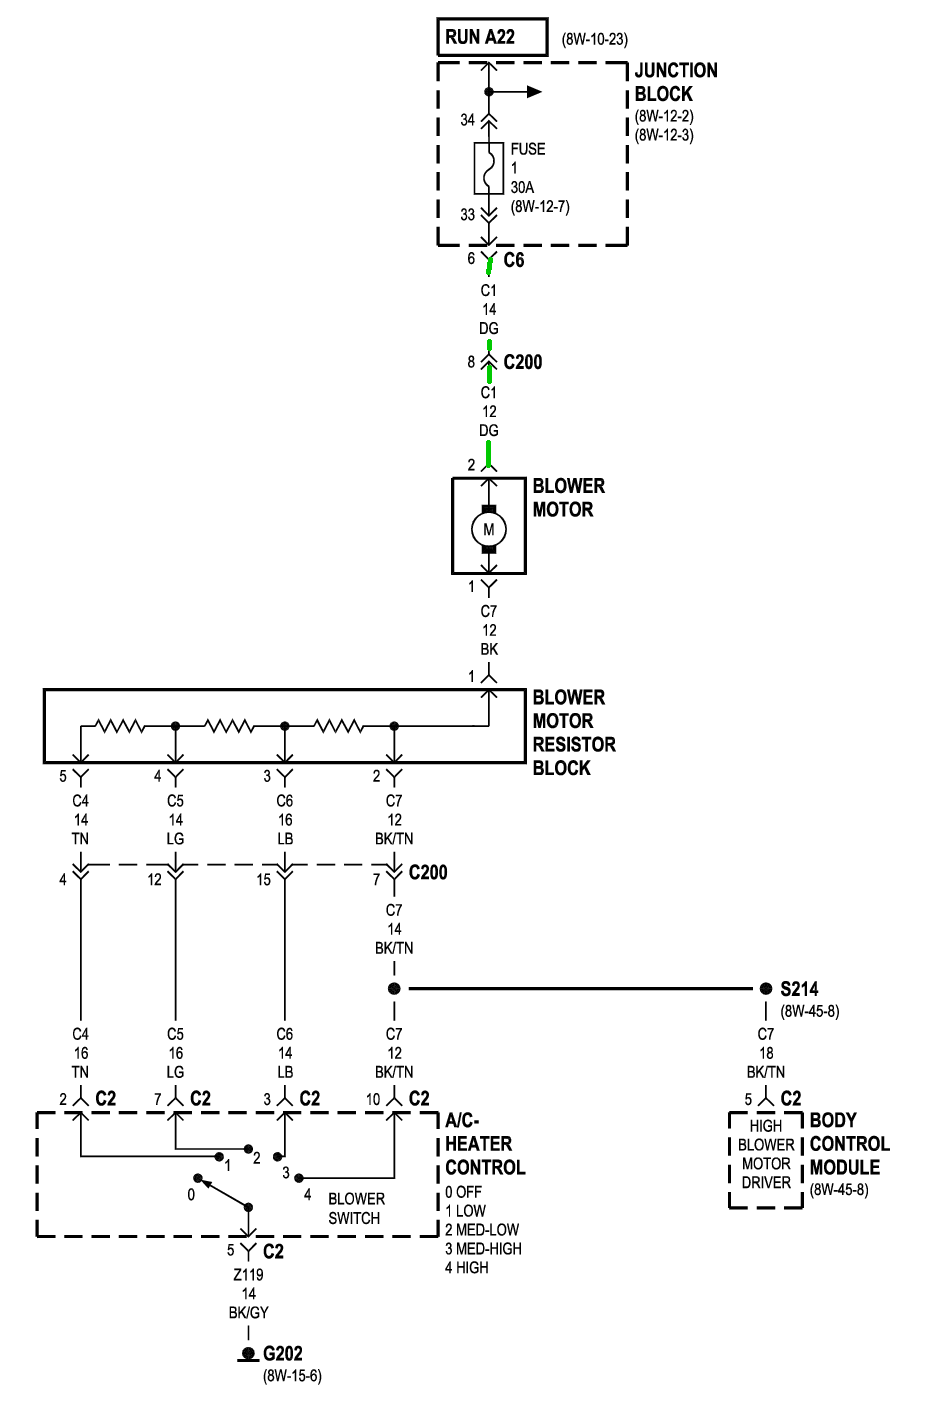 2005 chrysler sebring fuse box diagram lmFtQhg?resize=665%2C1013 2004 chrysler town and country heater fan wiring diagram 2002  at n-0.co